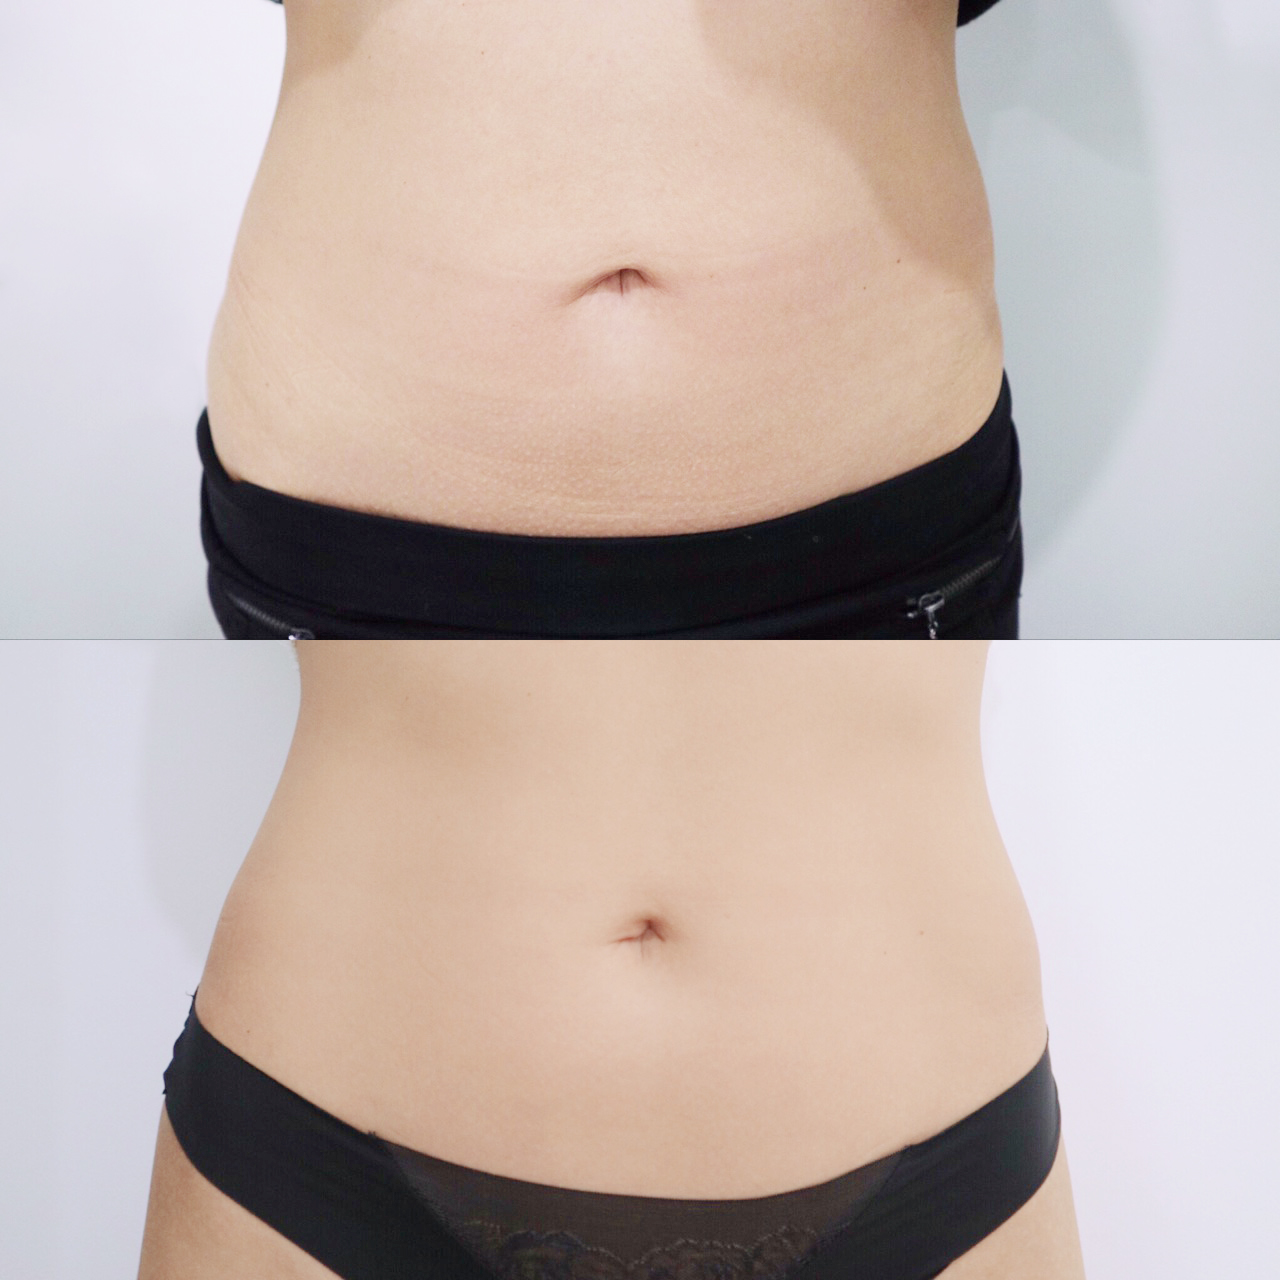 Stomach Tightening Before and After